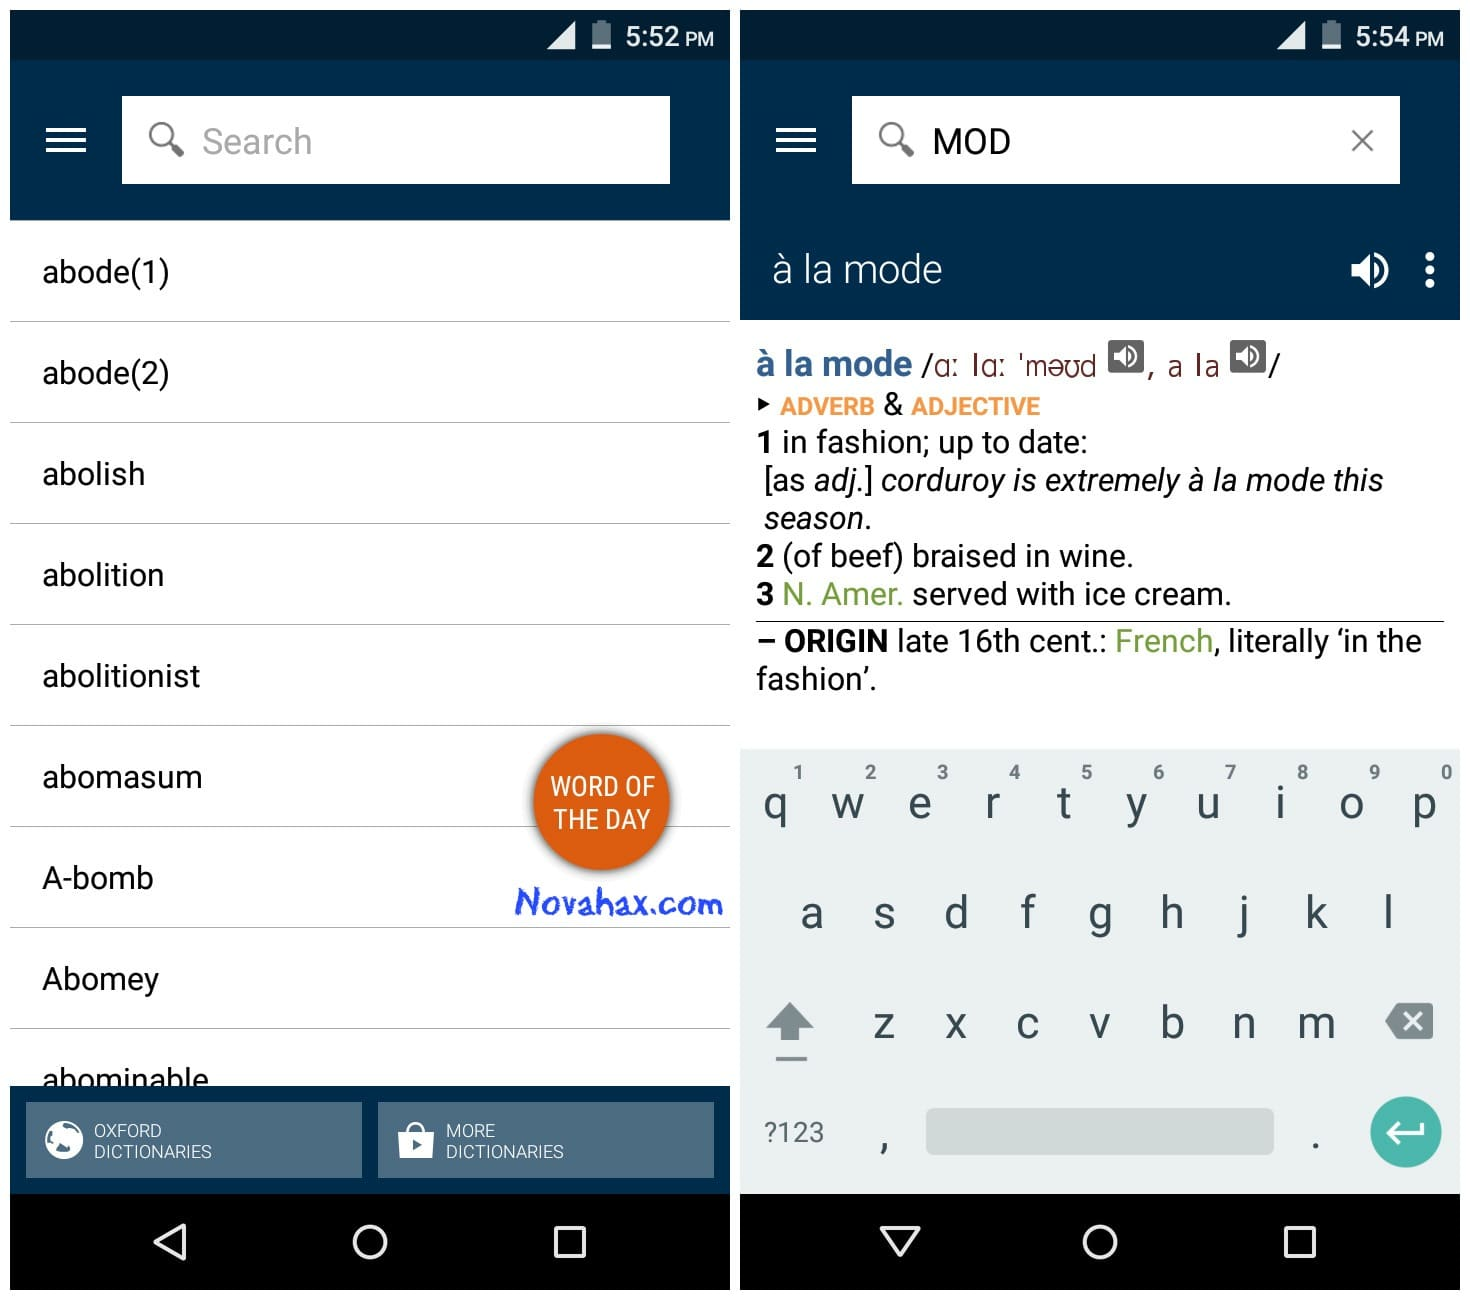 oxford-dictionary-of-english-premium-apk-setup-free-download